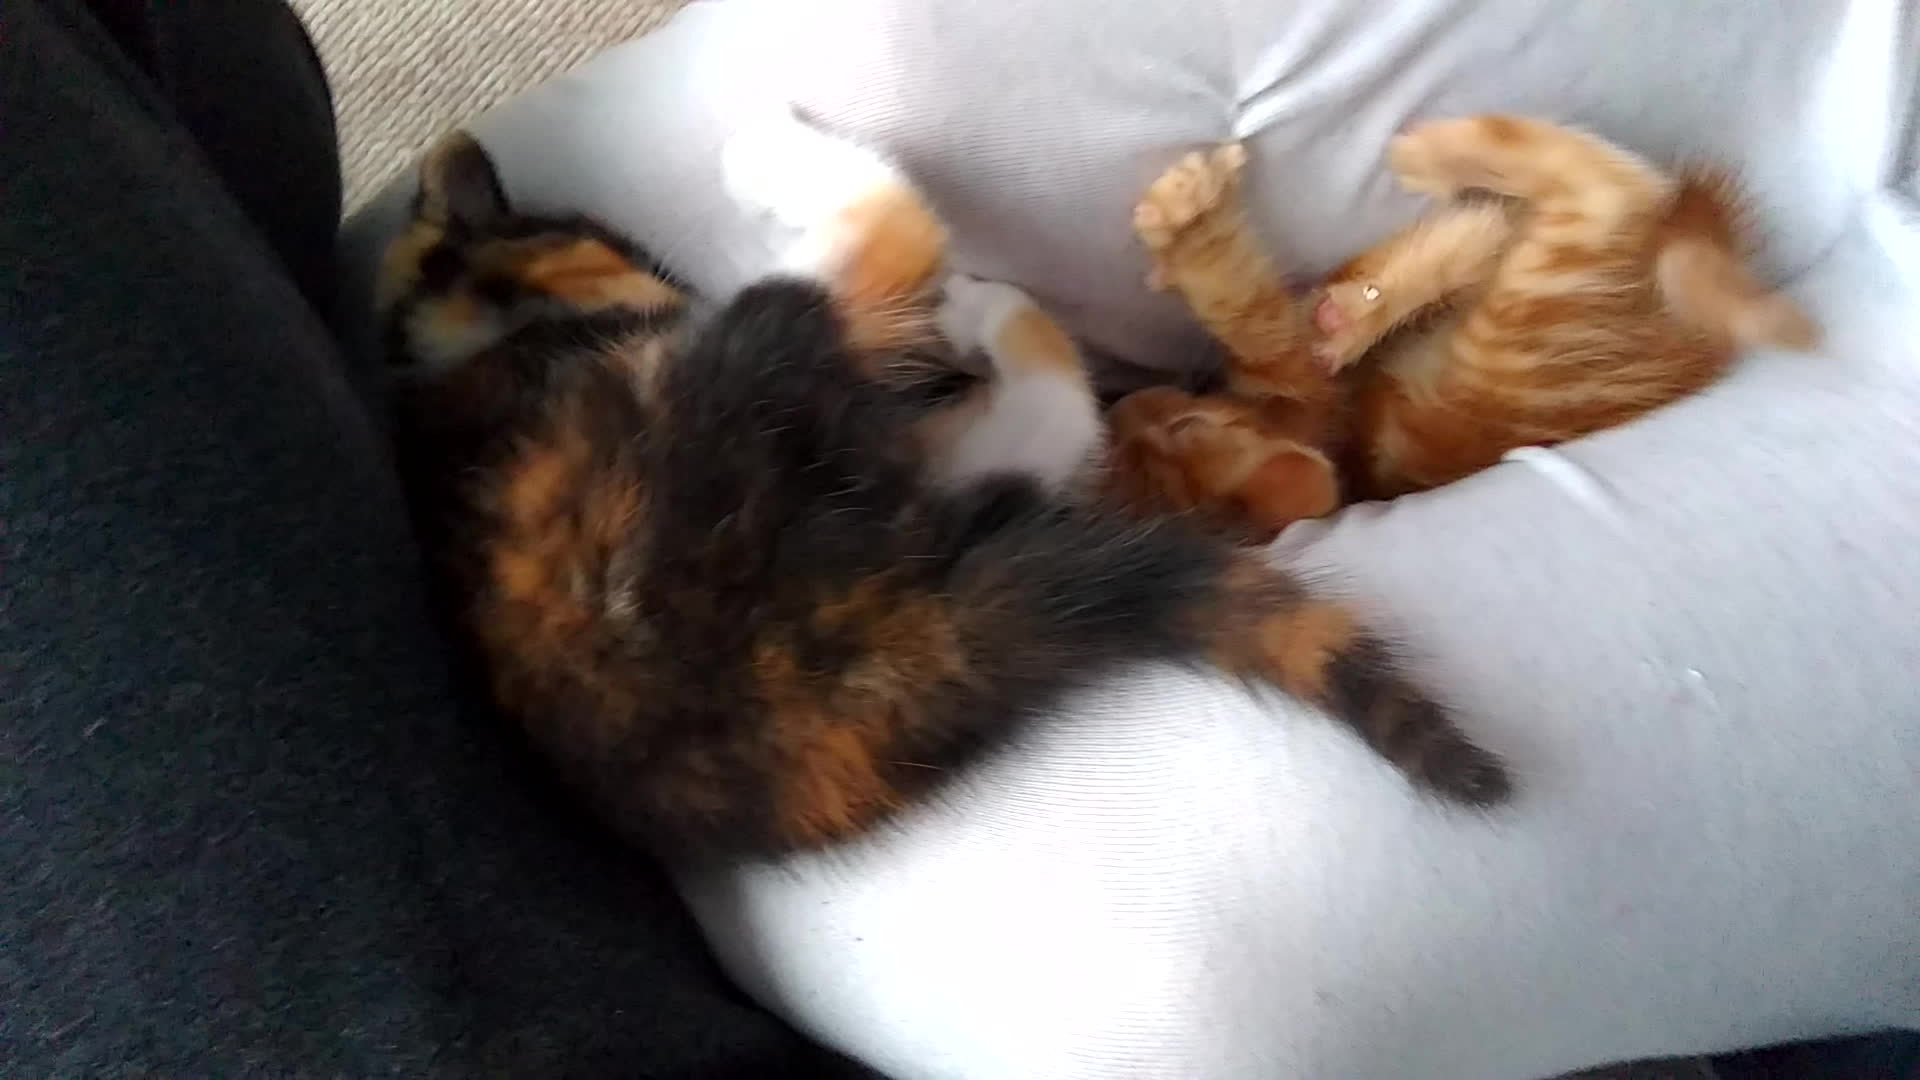 kittengifs, The battle of the crotch continues GIFs